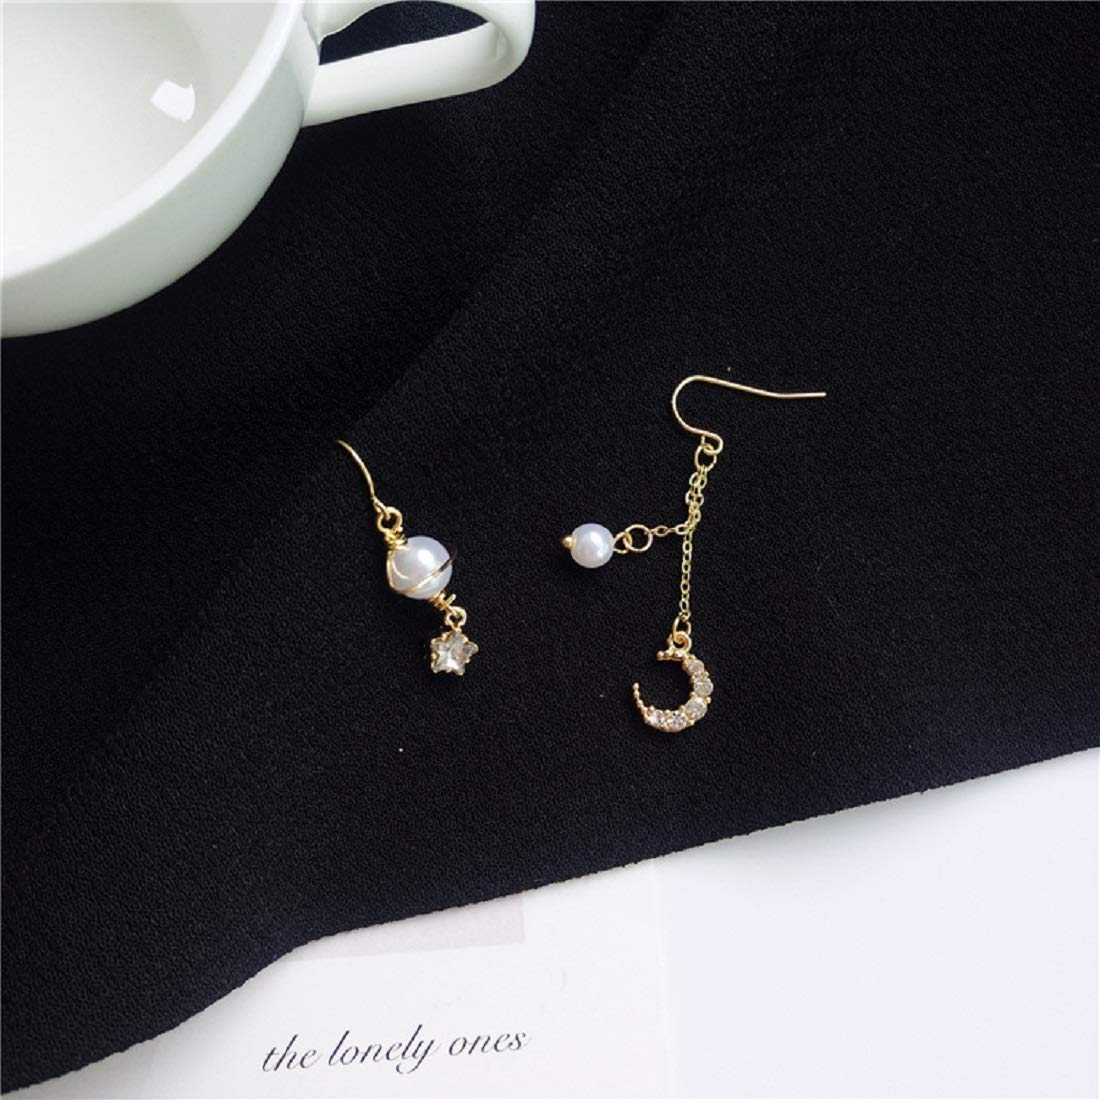 Fashion Simple Style Earring Great Gifts for Women Girls JXVLUYE Colors Earring for Women Girls E91